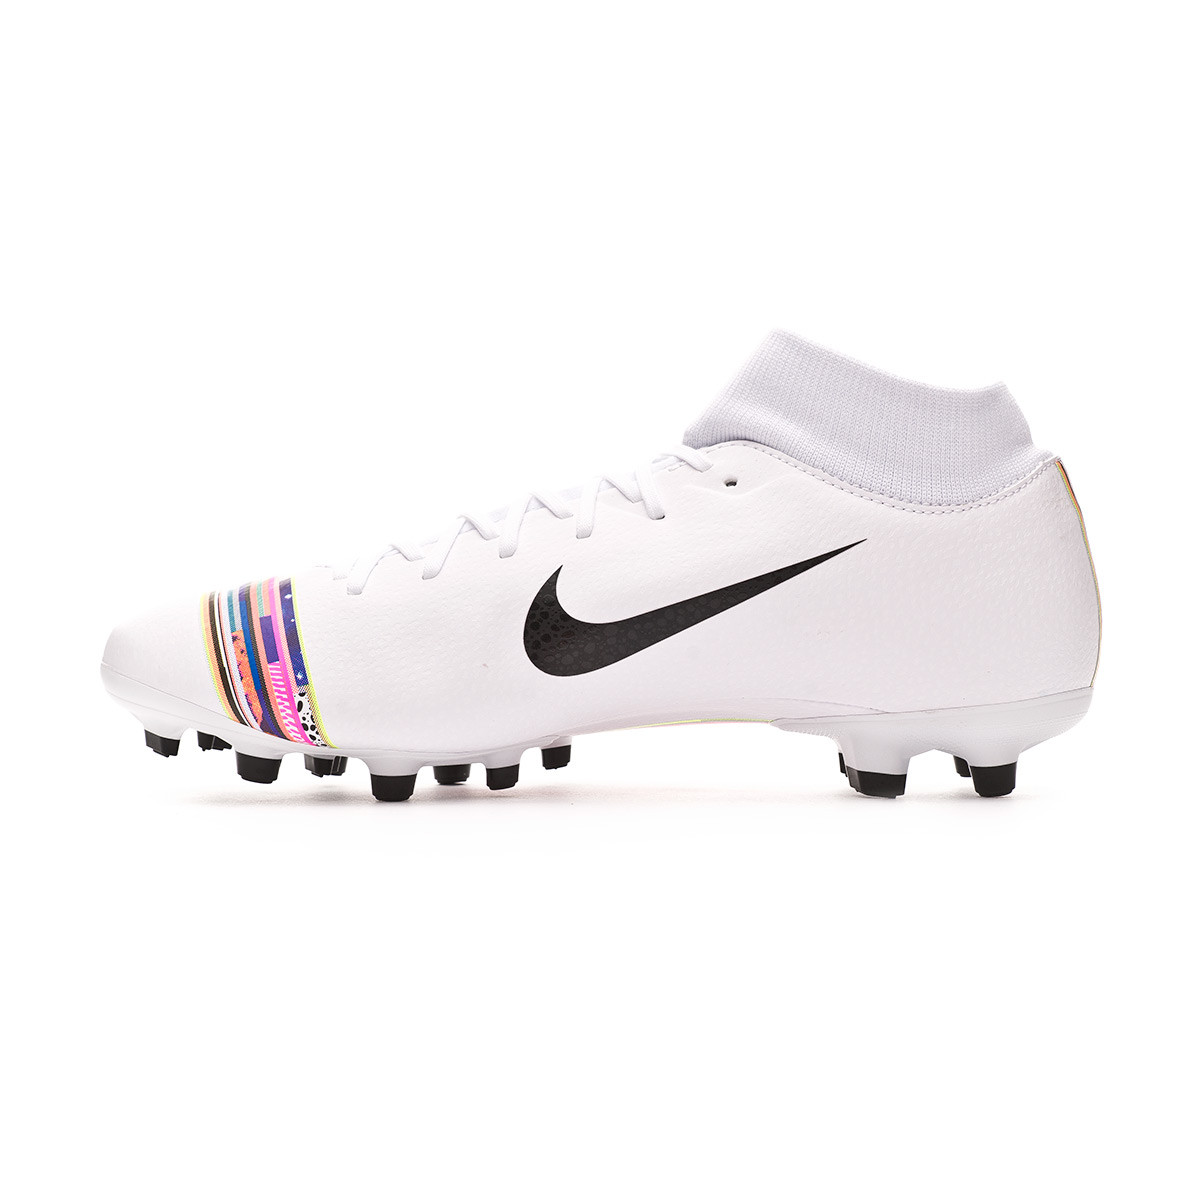 c9c9bb3b2bf67 Football Boots Nike Mercurial Superfly VI Academy LVL UP MG White-Black-Pure  platinum - Football store Fútbol Emotion